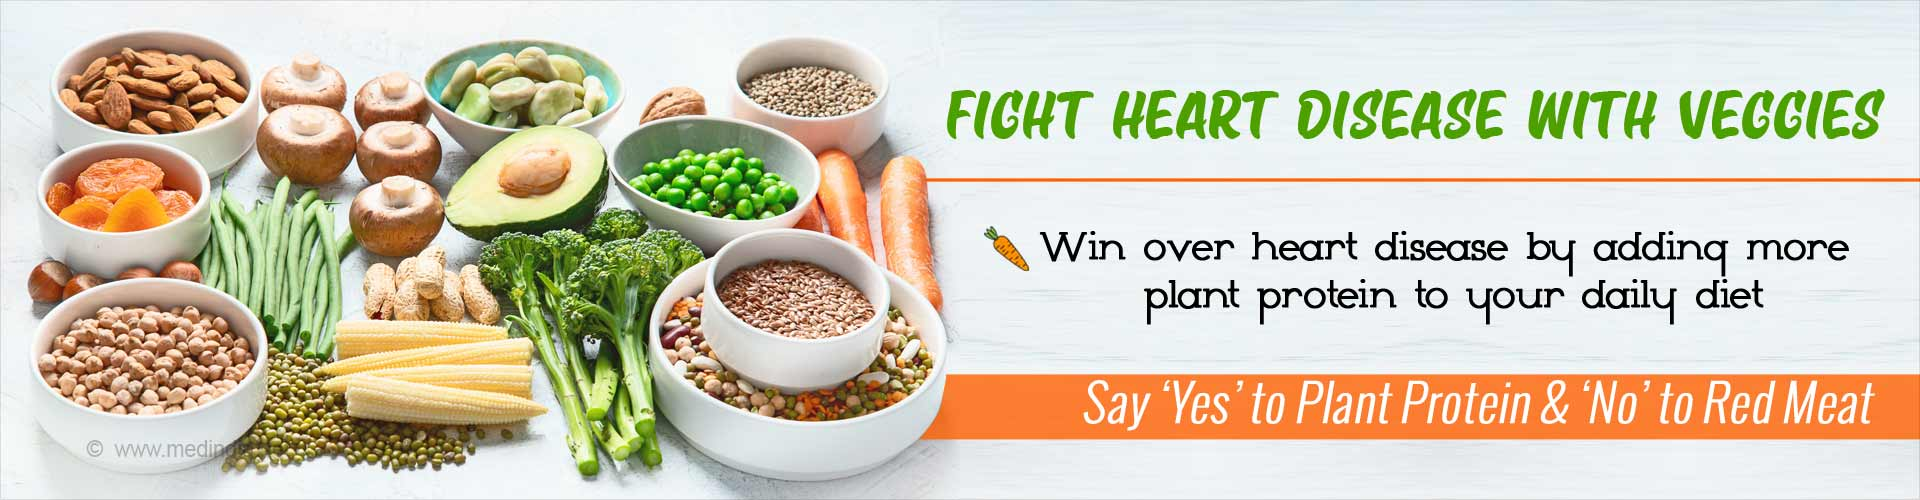 Eating More Plant Protein to Keep Your Heart Healthy